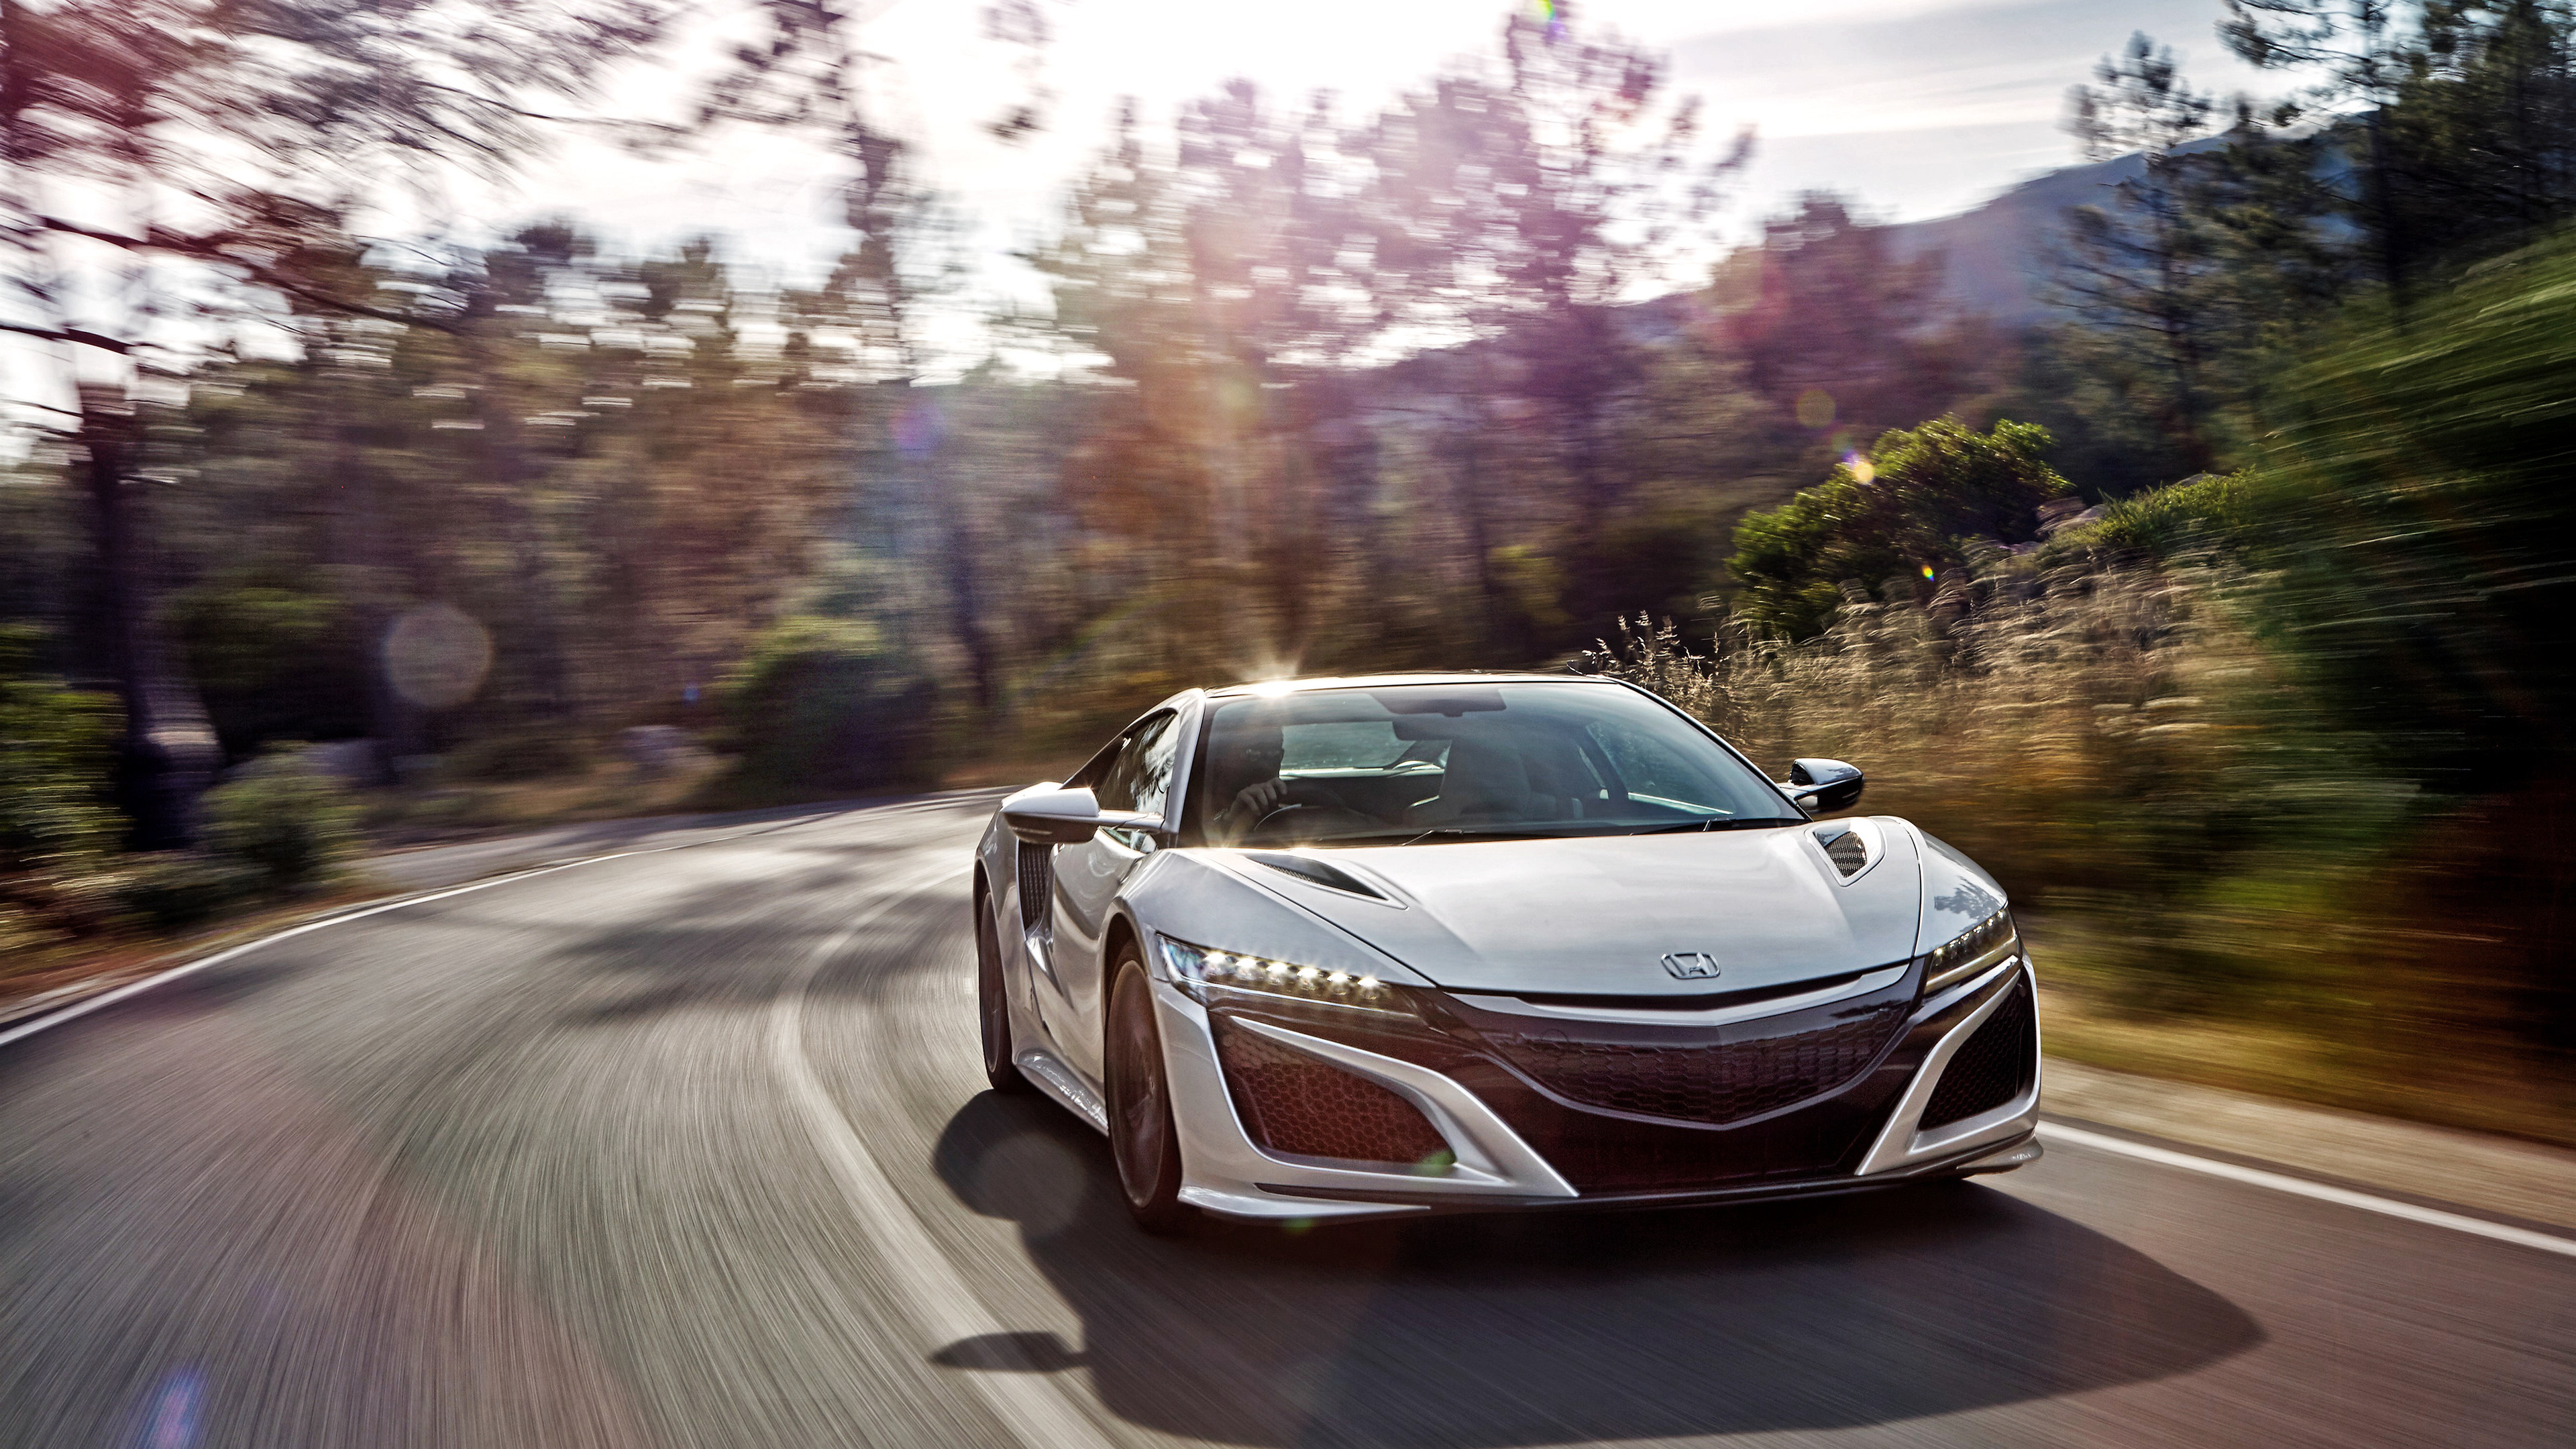 acura nsx 2017 hd 1539104671 - Acura NSX 2017 HD - cars wallpapers, acura wallpapers, 2017 cars wallpapers